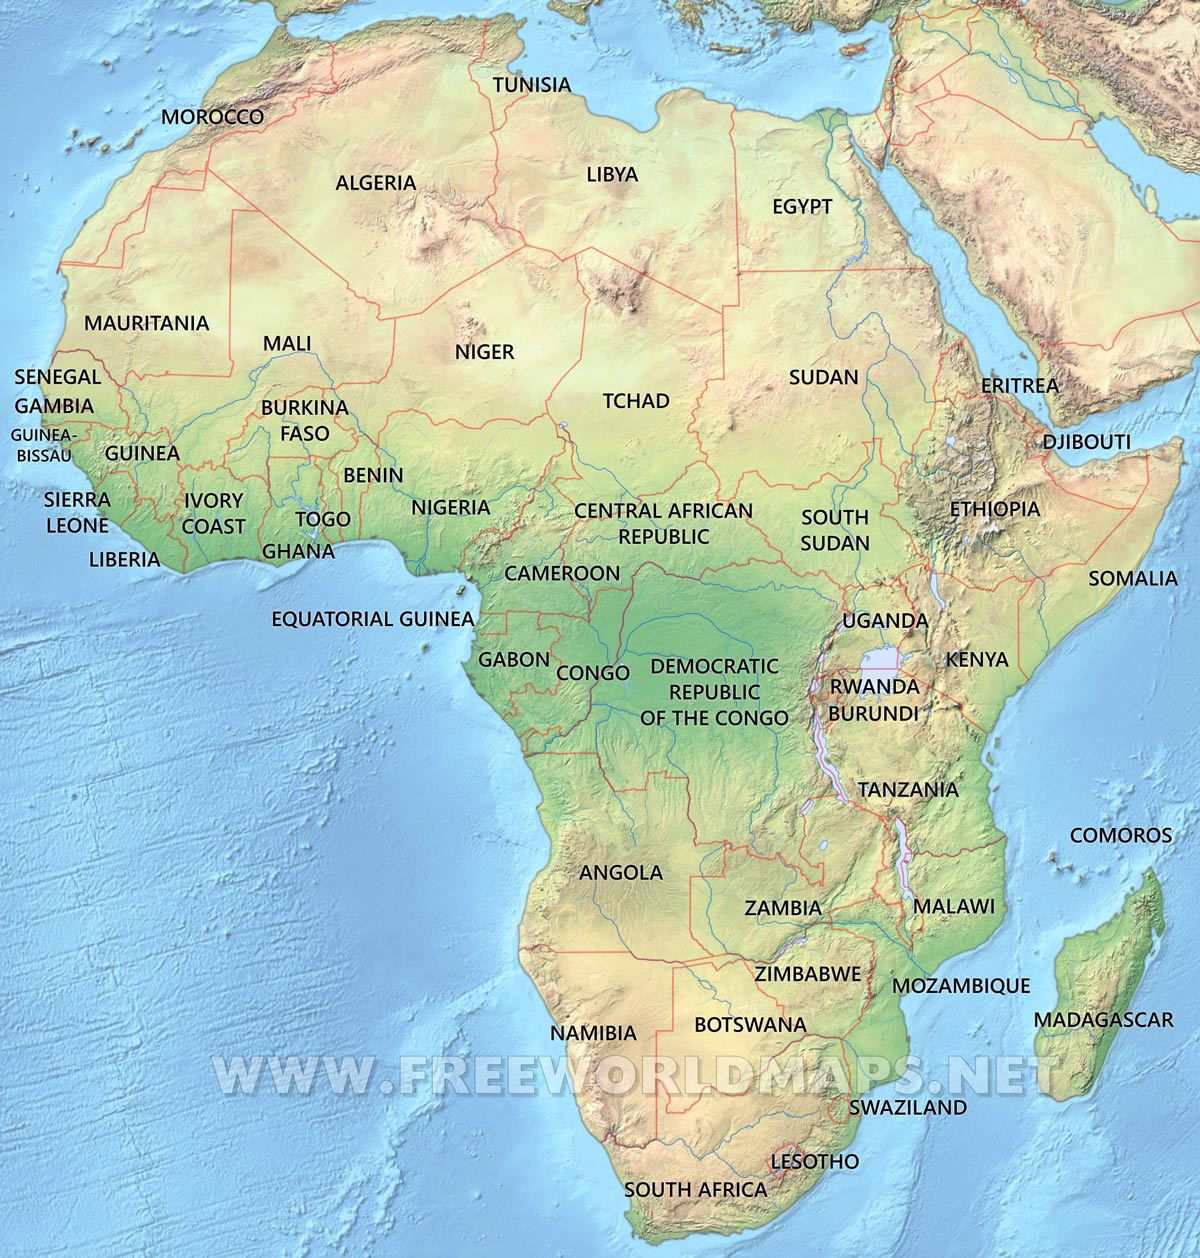 Physical Features Map Of Africa Africa Physical Map – Freeworldmaps.net